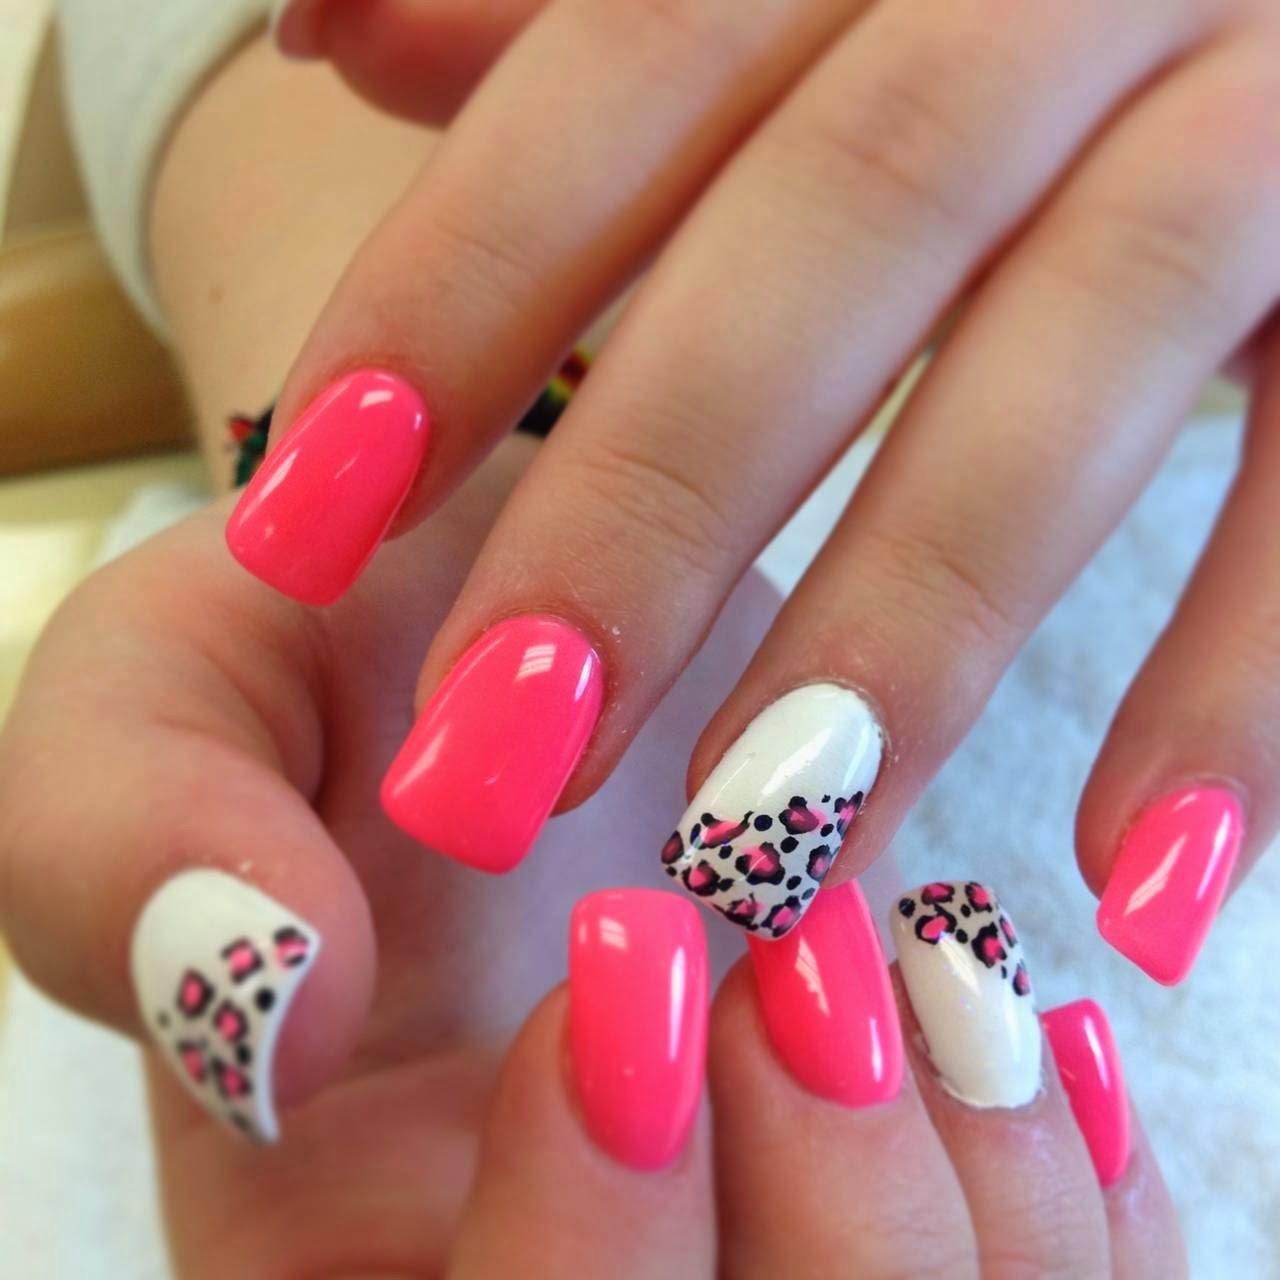 Adorable Nail Art: Summer Acrylic Nail Designs